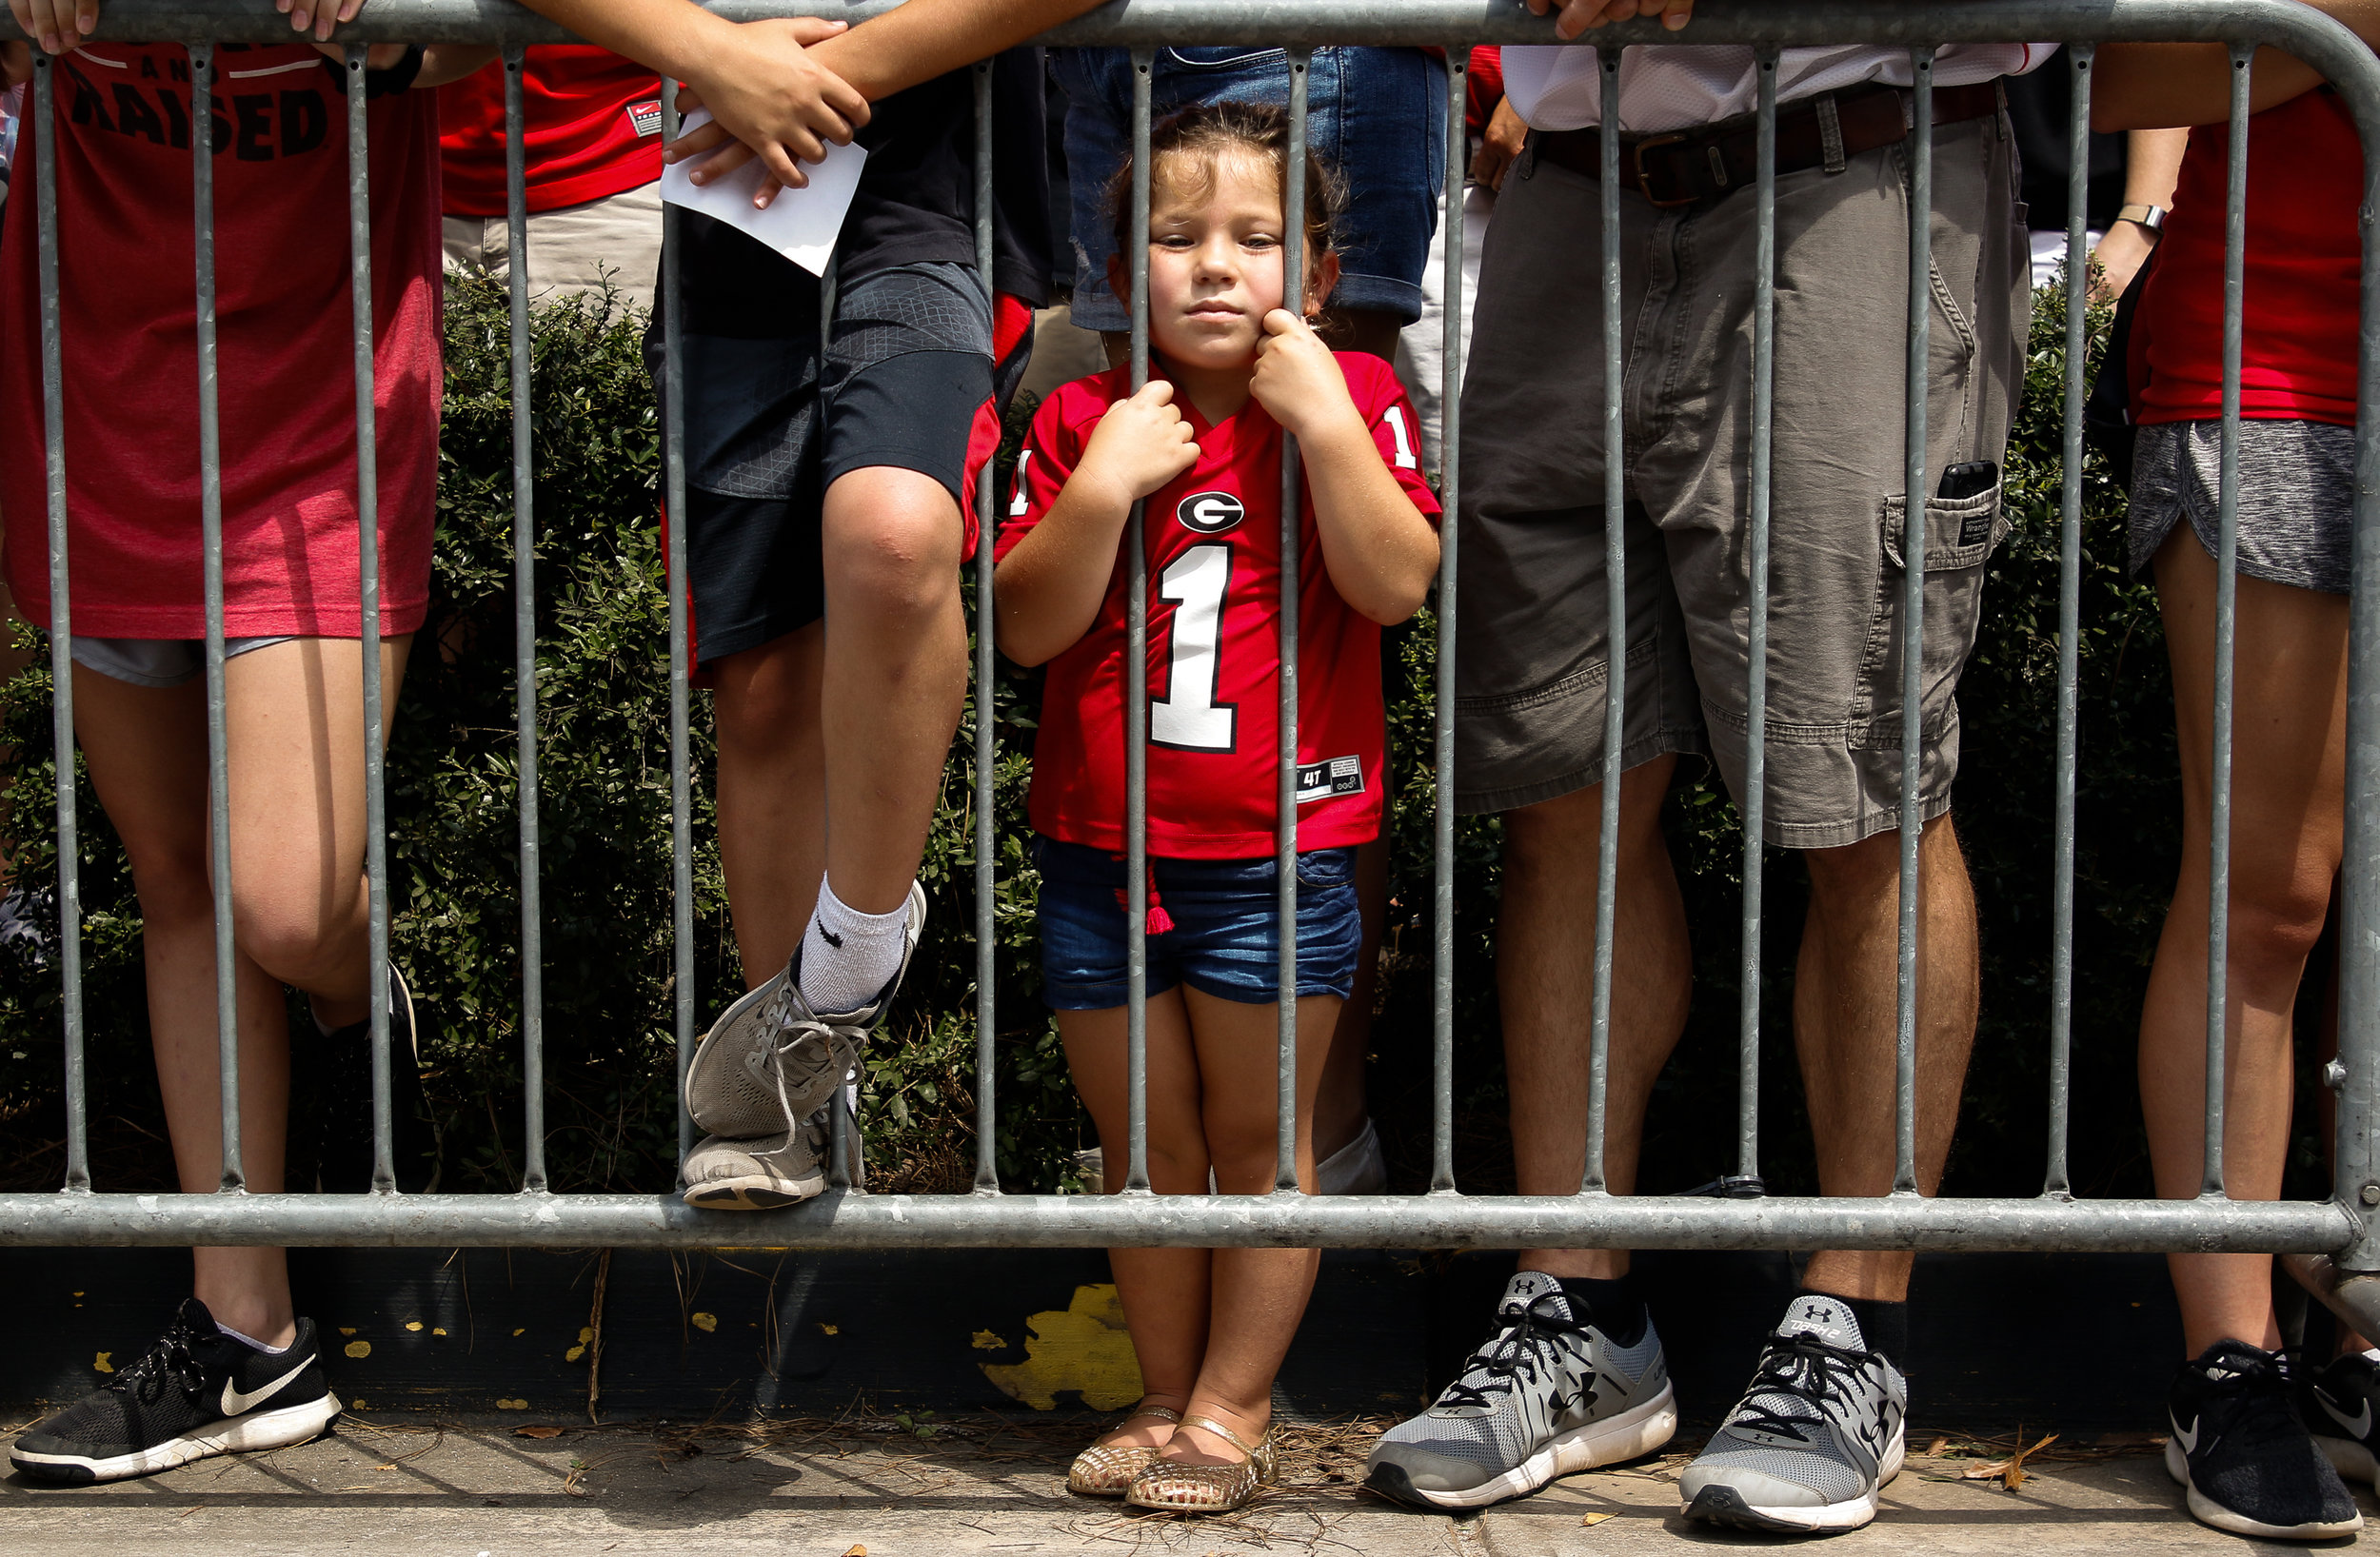 A young fan waits behind the barricade for the University of Georgia football team to arrive for their first Dawg Walk of the 2018 season in Athens, Georgia on Saturday, September 1, 2018.